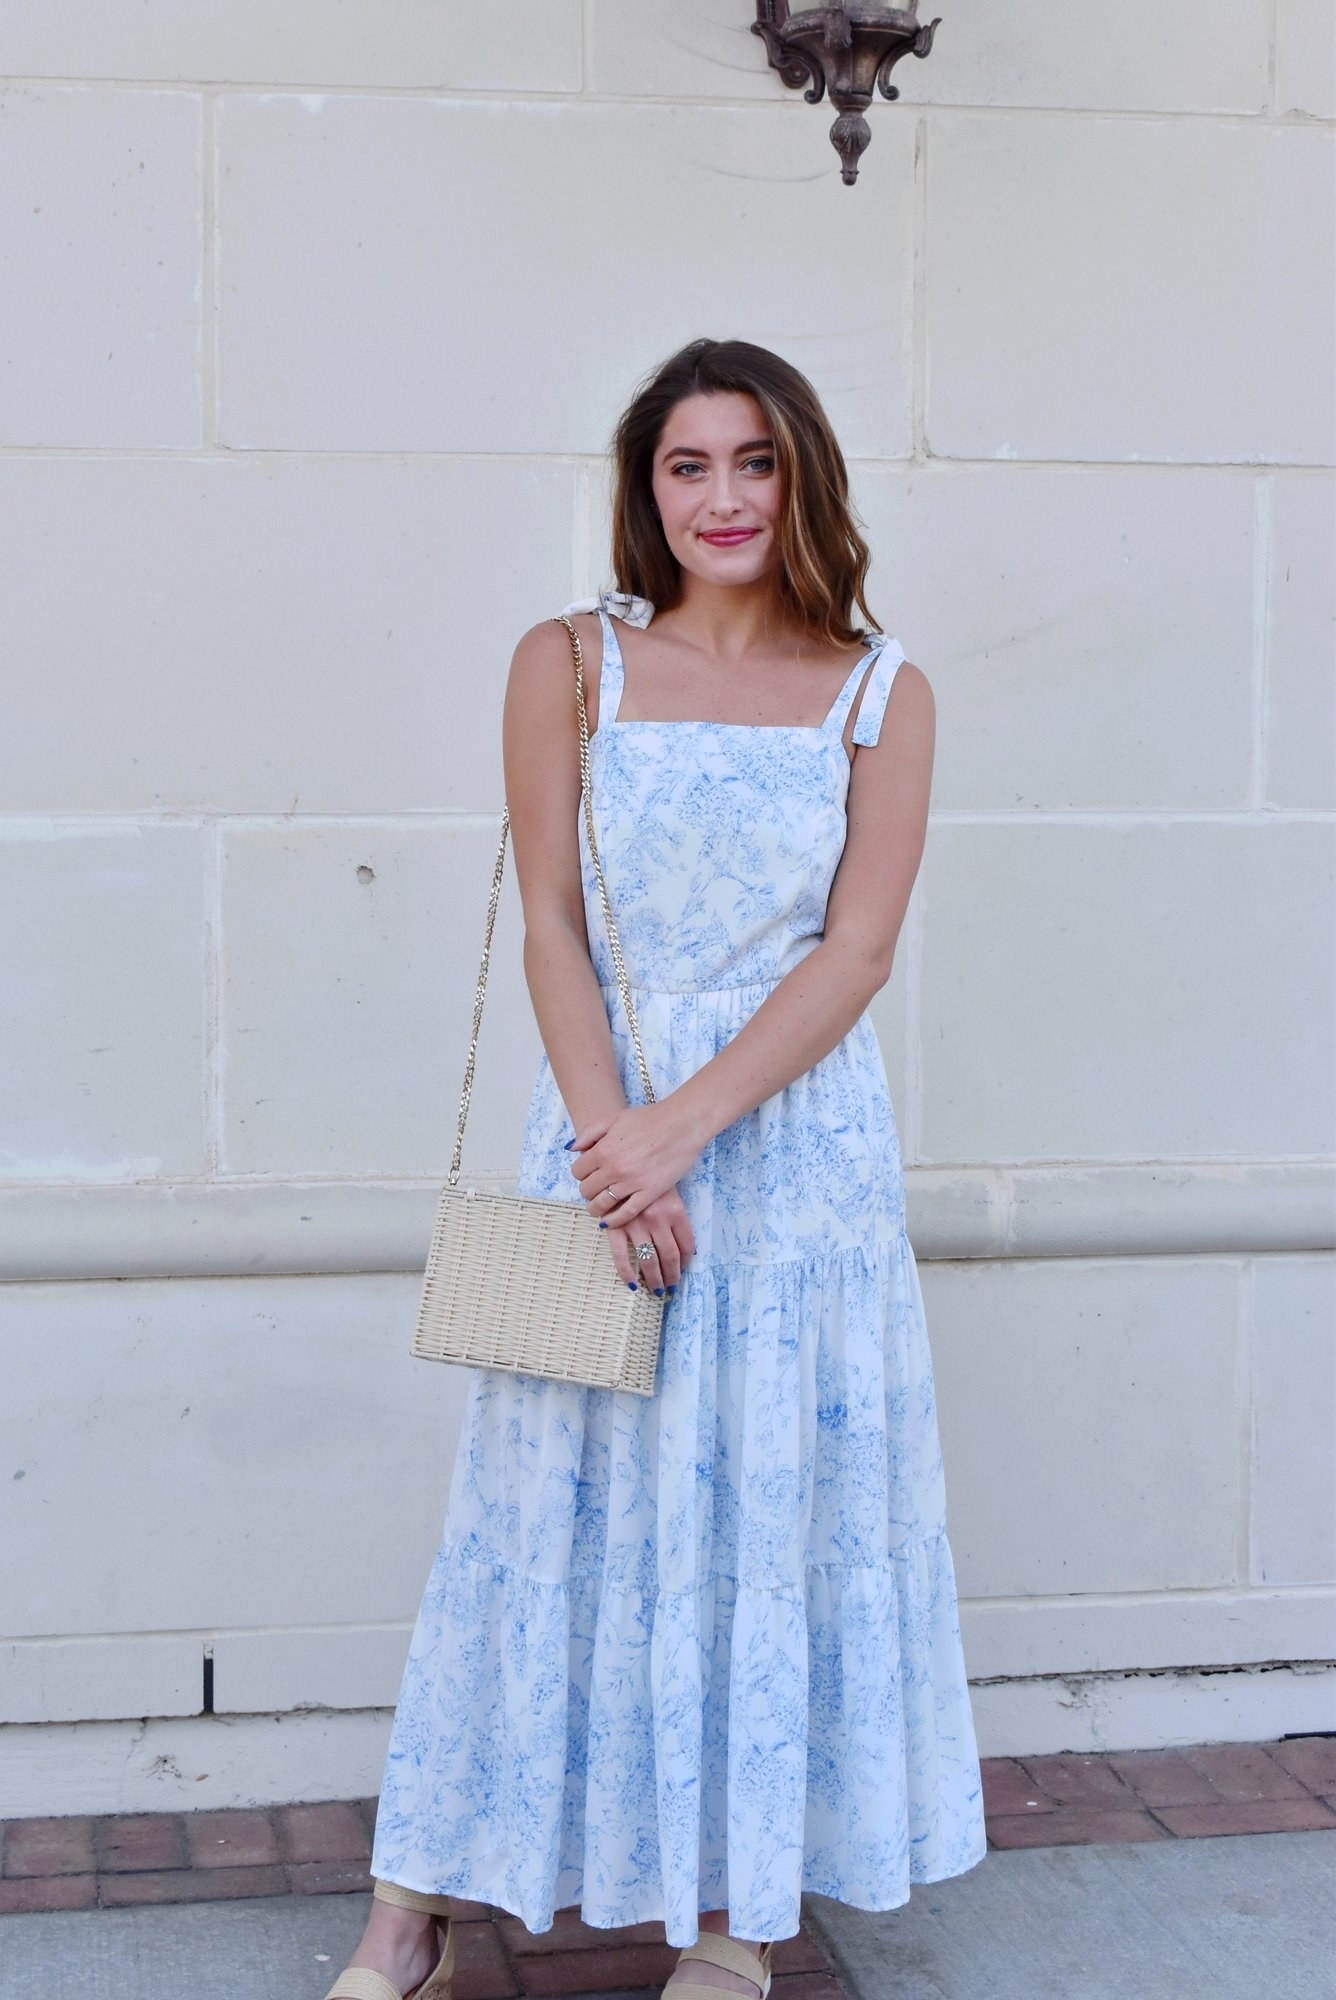 model wearing the blue and white midi dress with tie shoulder straps